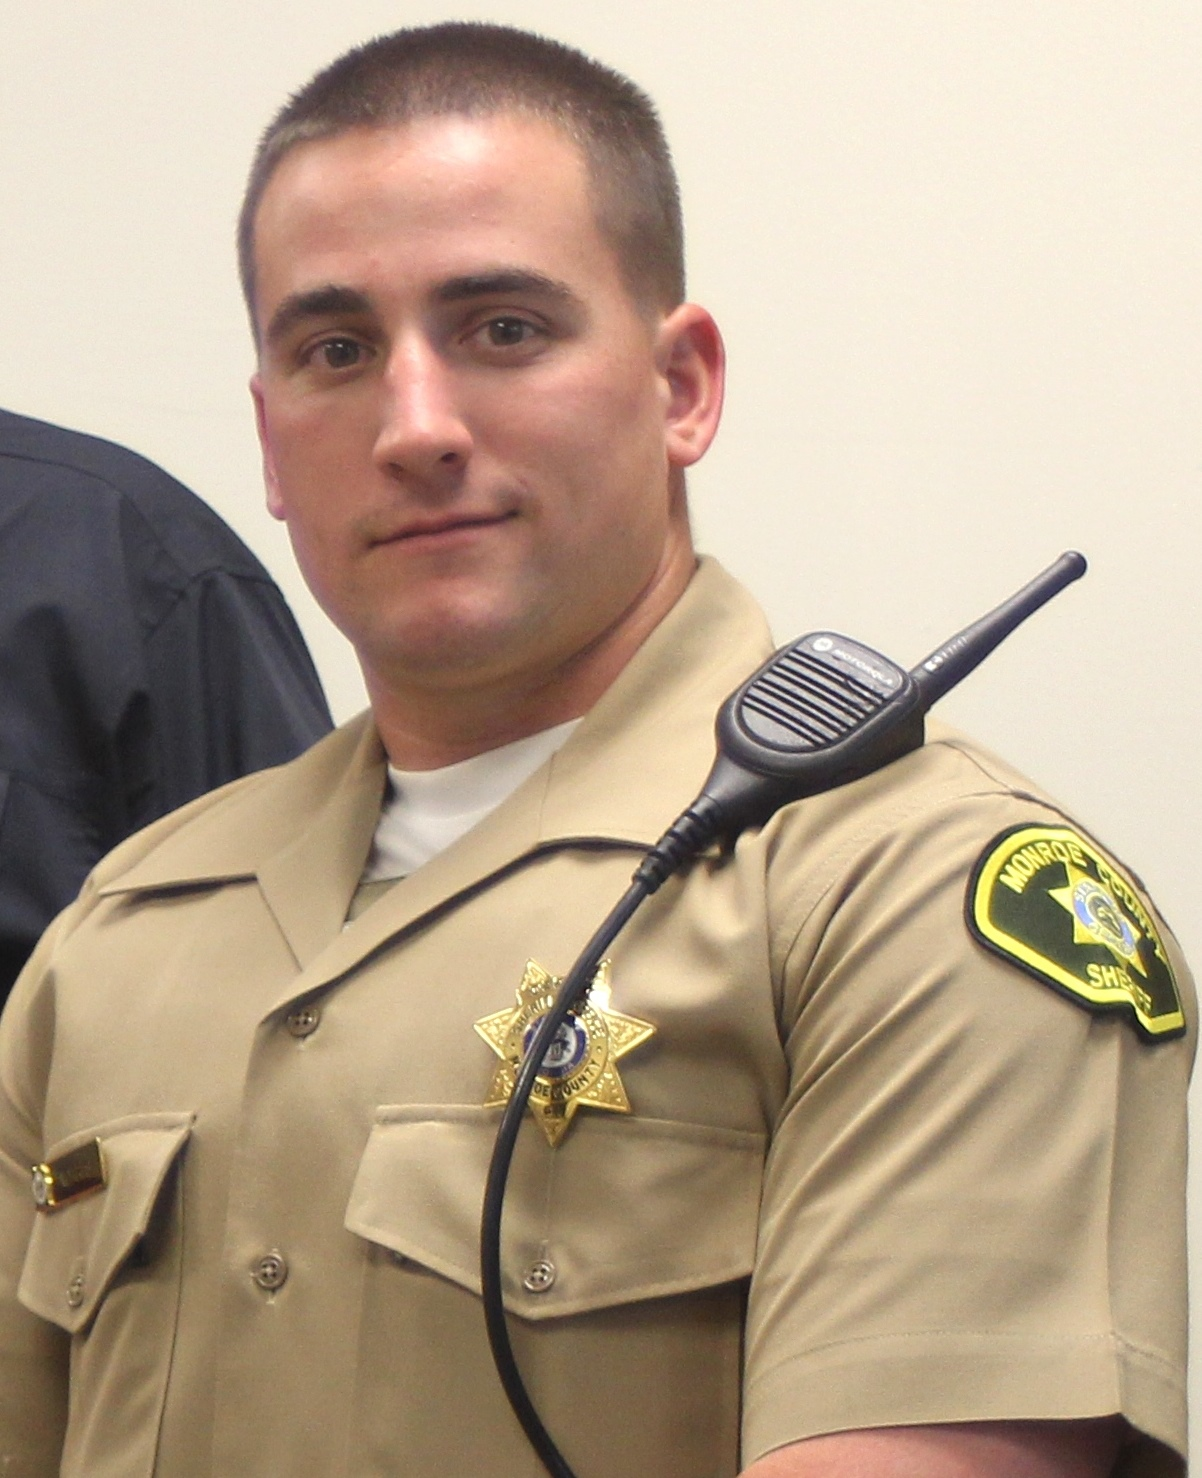 Deputy Sheriff Michael Andrew Norris | Monroe County Sheriff's Office, Georgia